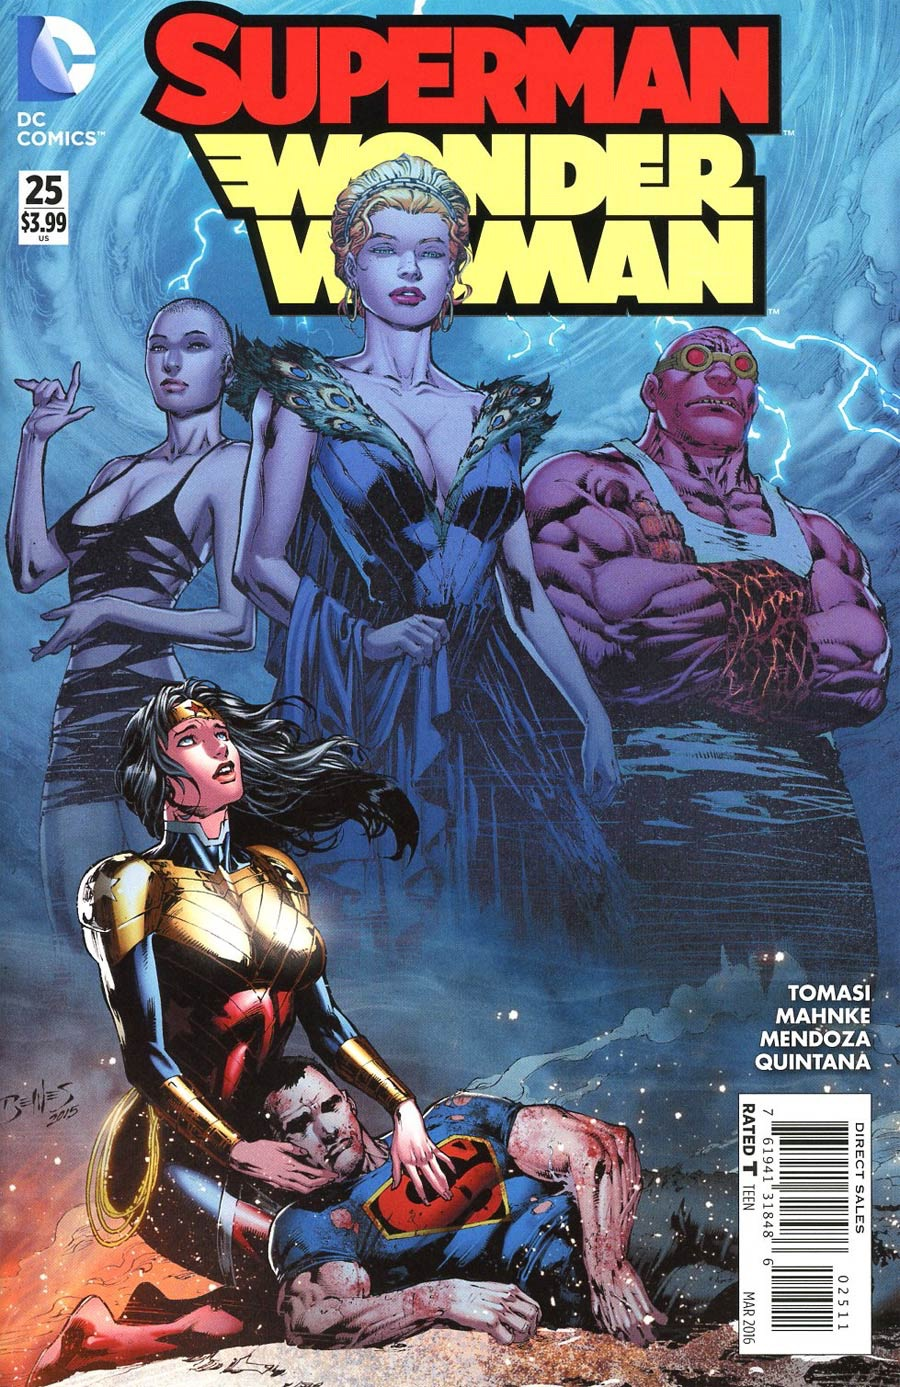 Superman/Wonder Woman #25